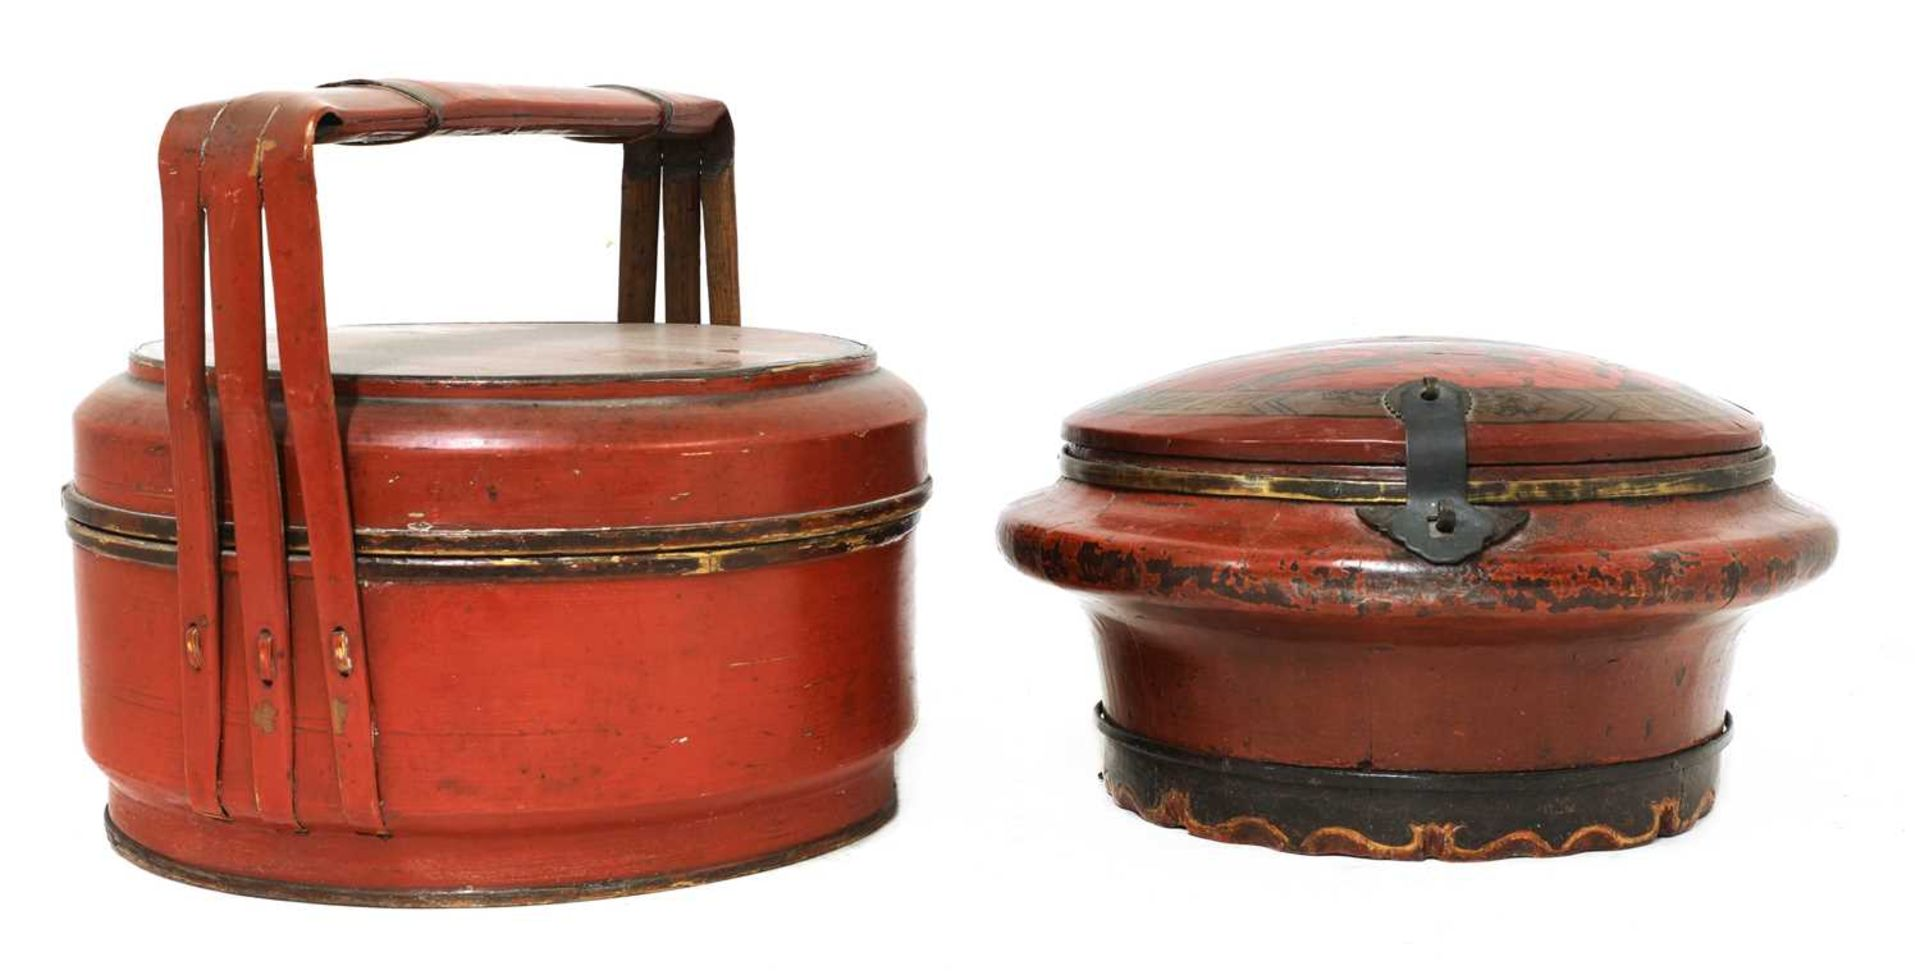 A Chinese red-lacquered food carrier, - Image 3 of 7